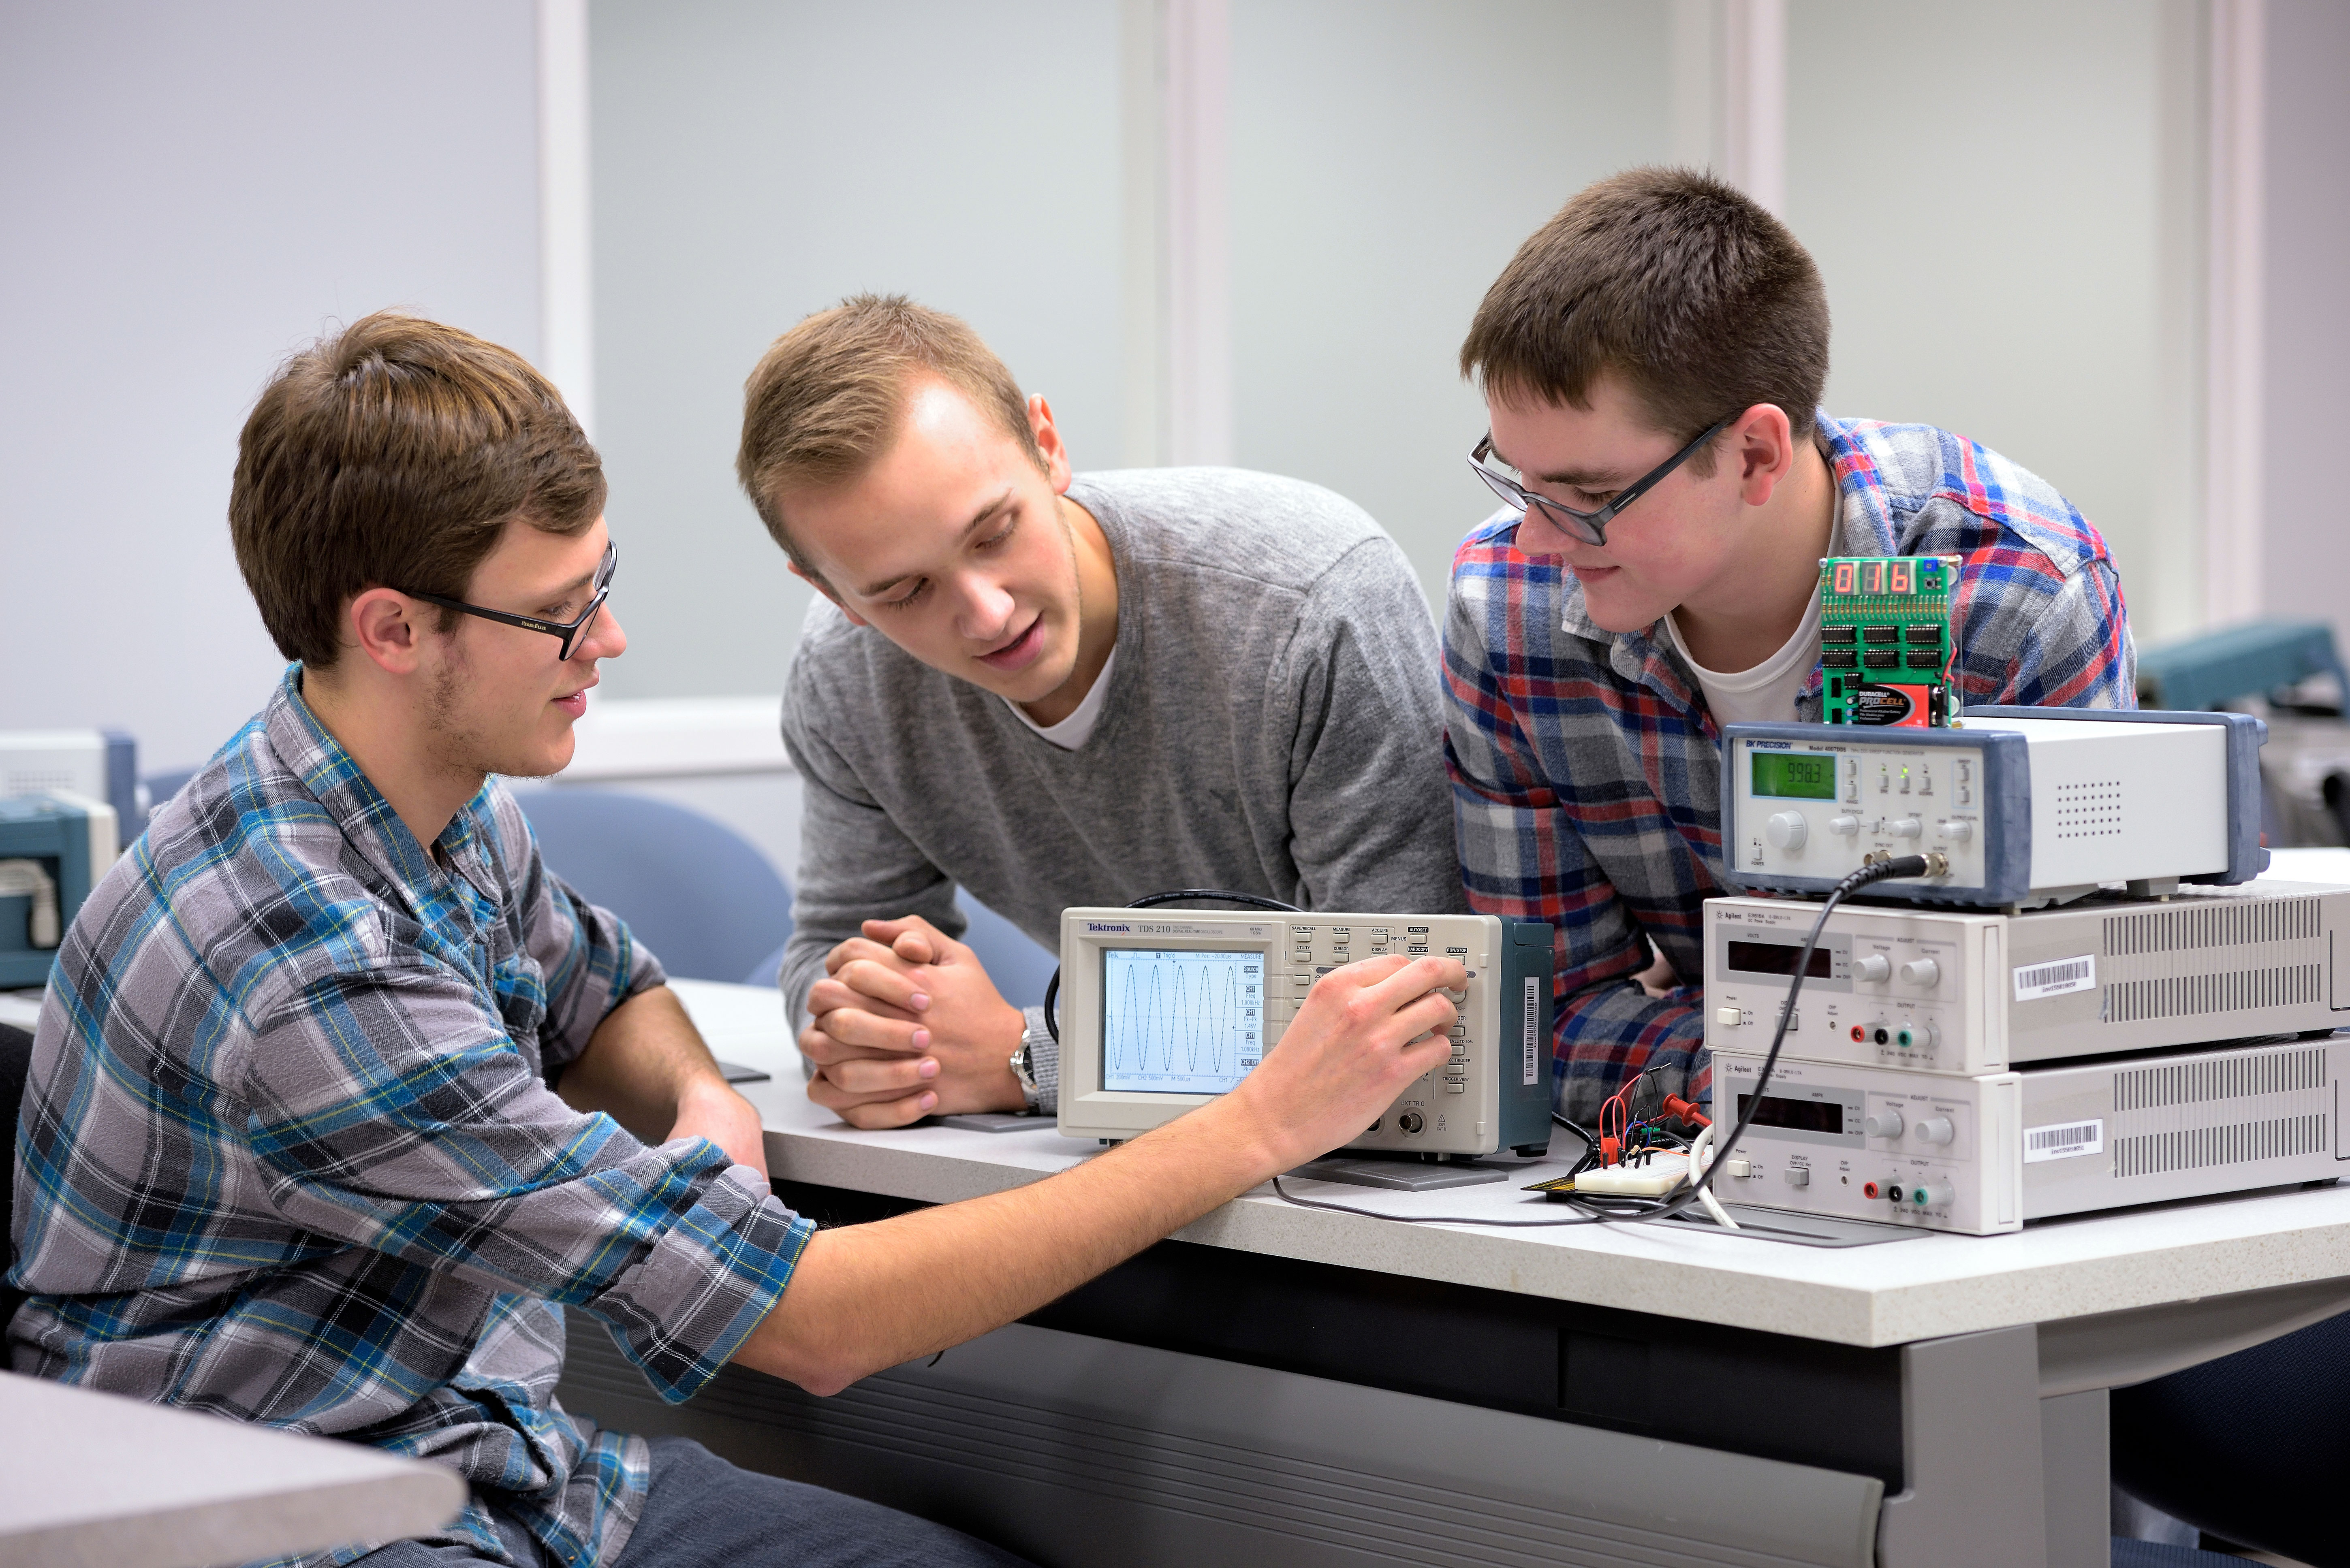 Electrical electronic students looking at a waveform on a digital oscilloscope